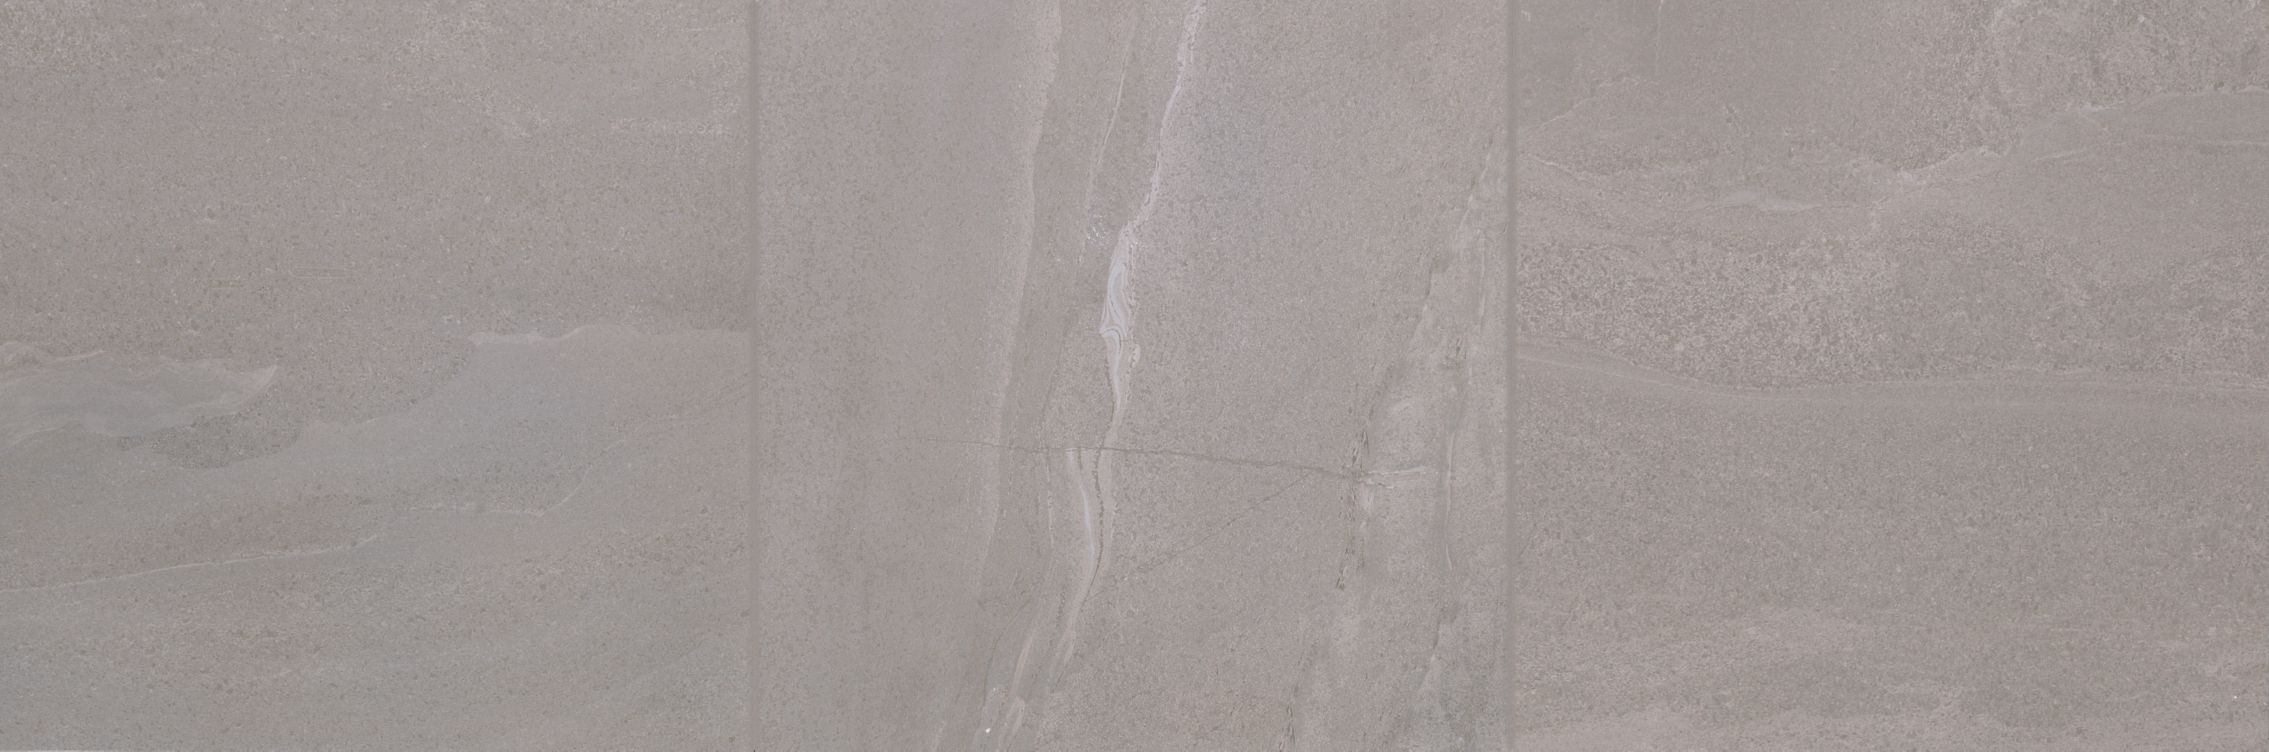 CeramicPorcelainTile GrandTerrace T834F-GB94-24x24-FieldTile-Porcelain LuxuryGrayPolished